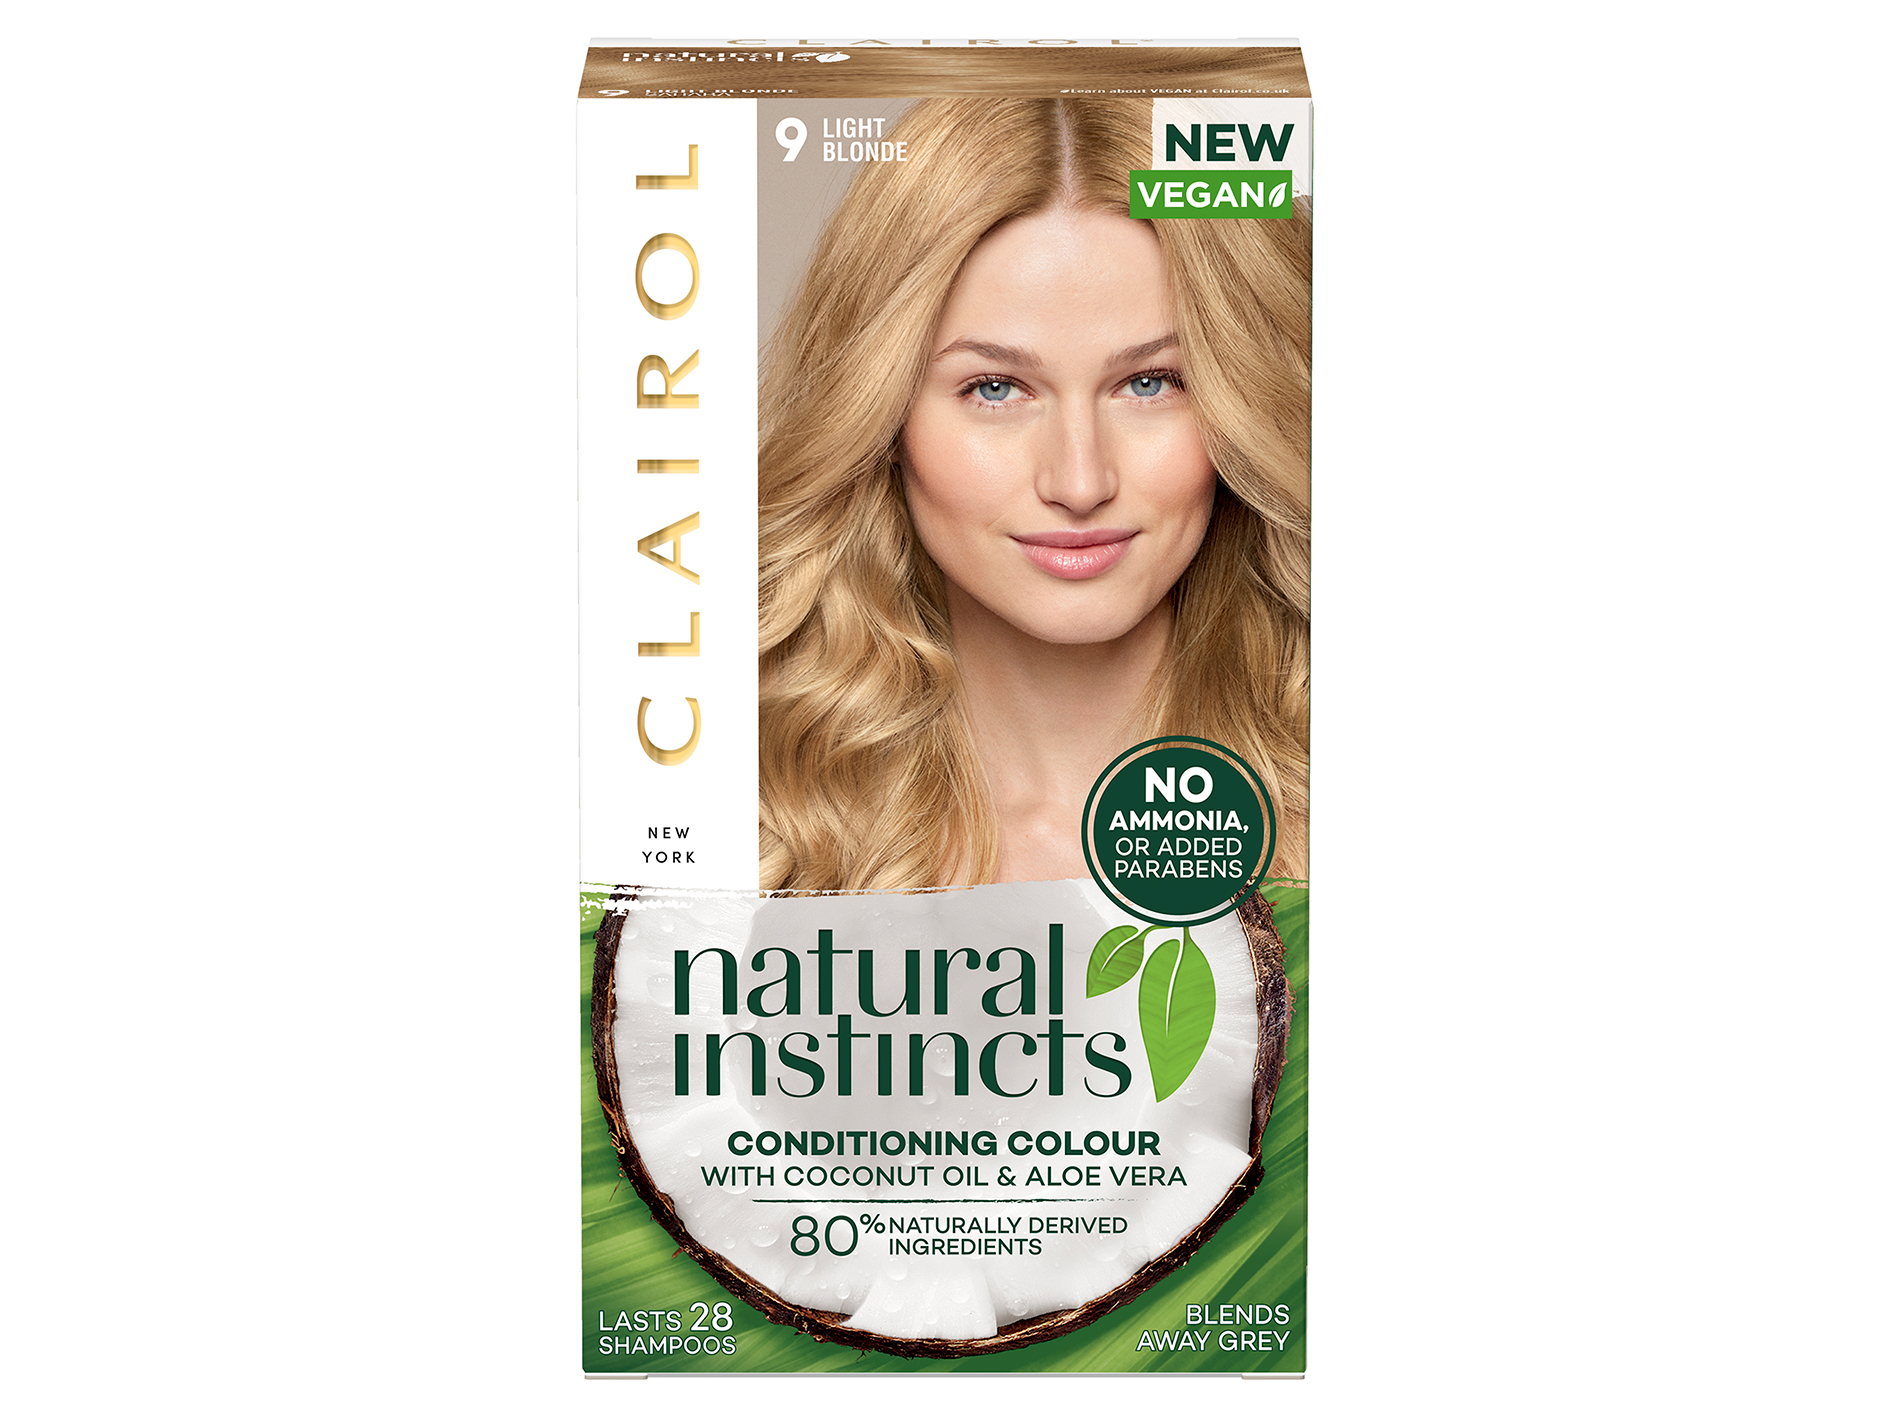 Clairol Natural Instincts Conditioning Colour